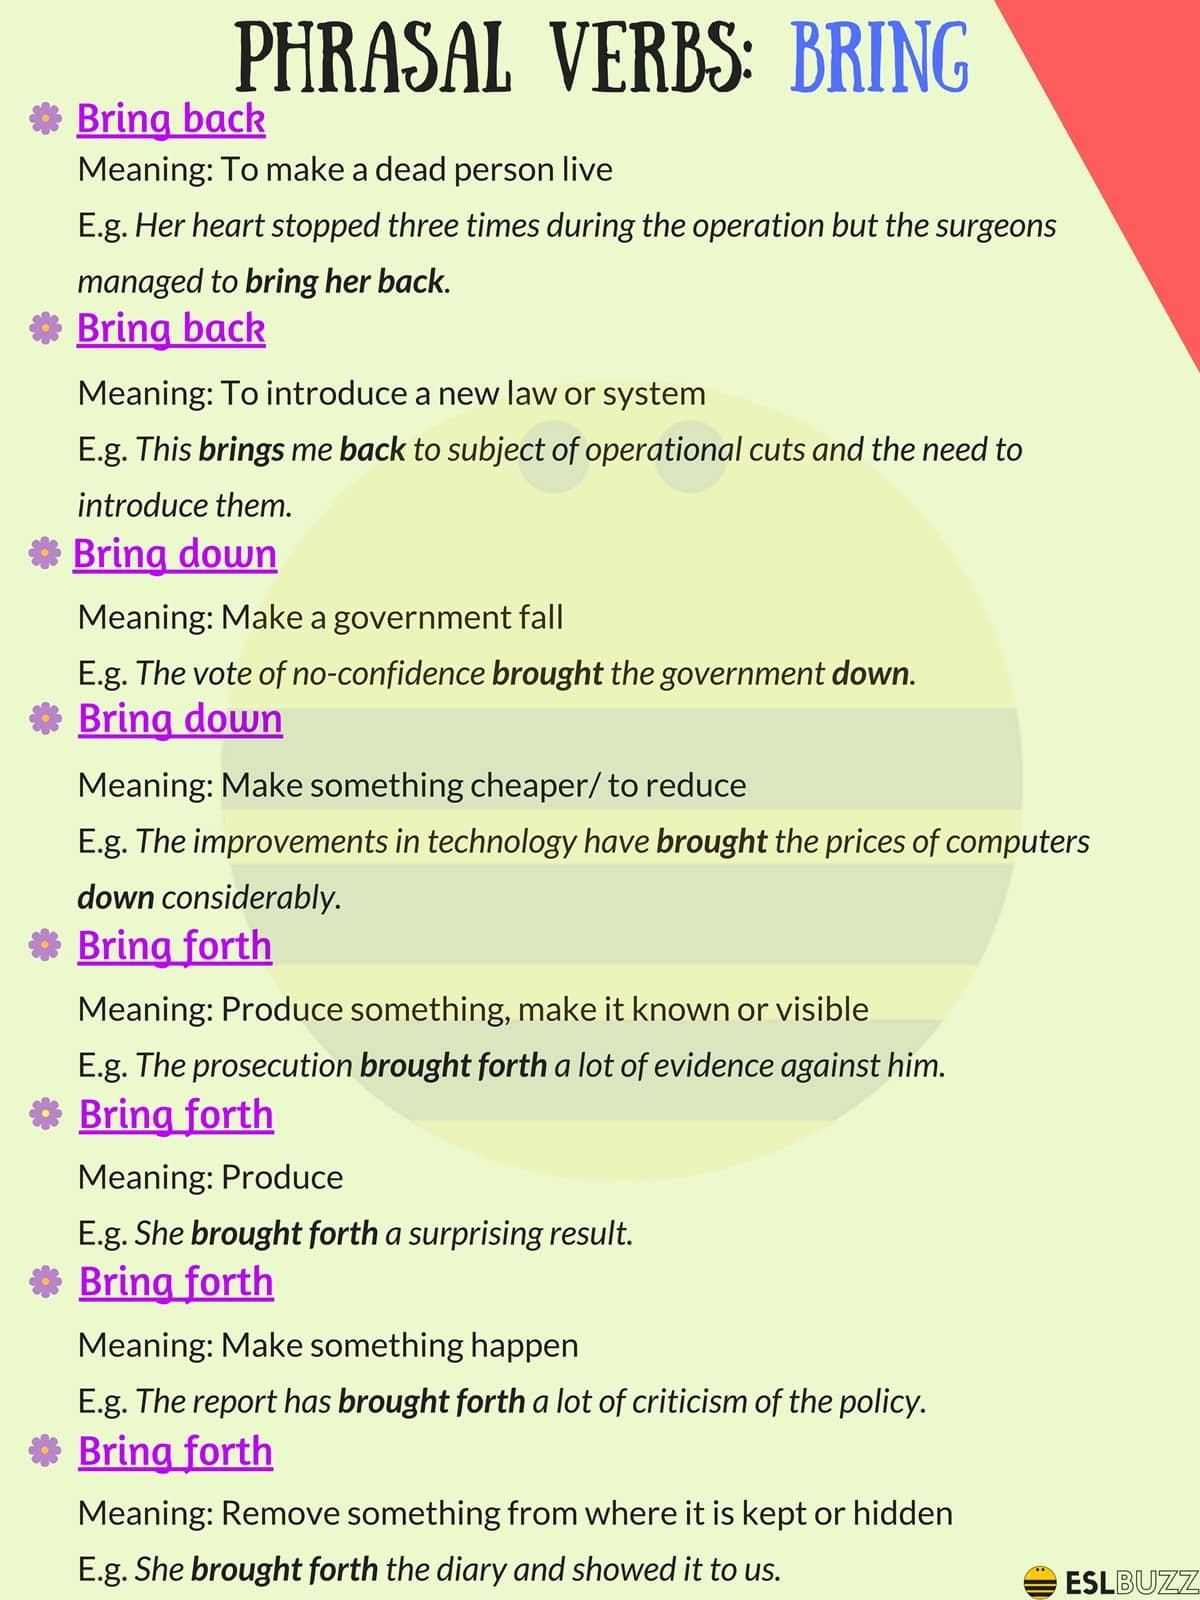 100+ of the Most Useful Phrasal Verbs in English (With Meaning & Examples) 12